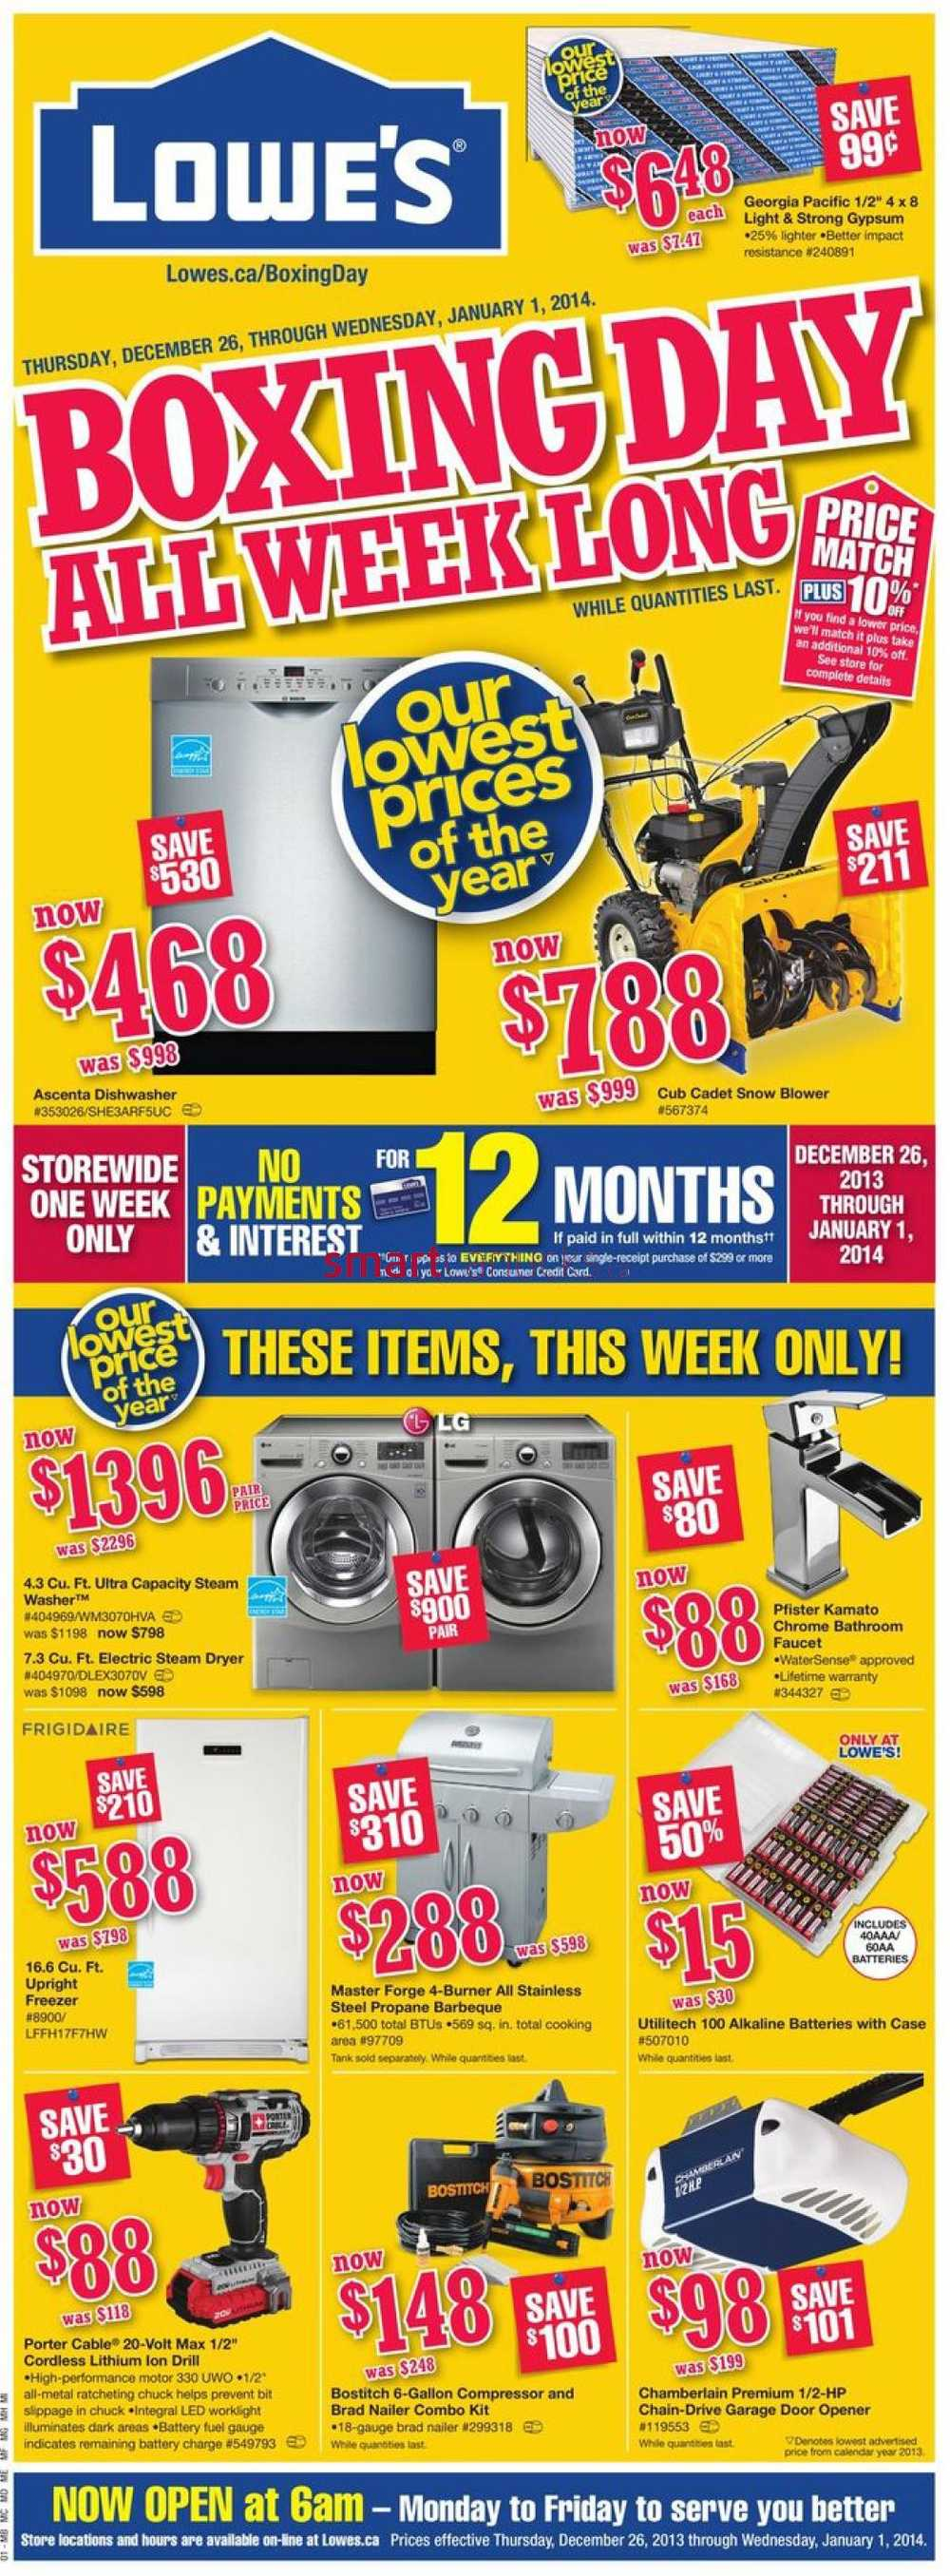 Displaying 19> Images For - Lowes Coupon December 2013...